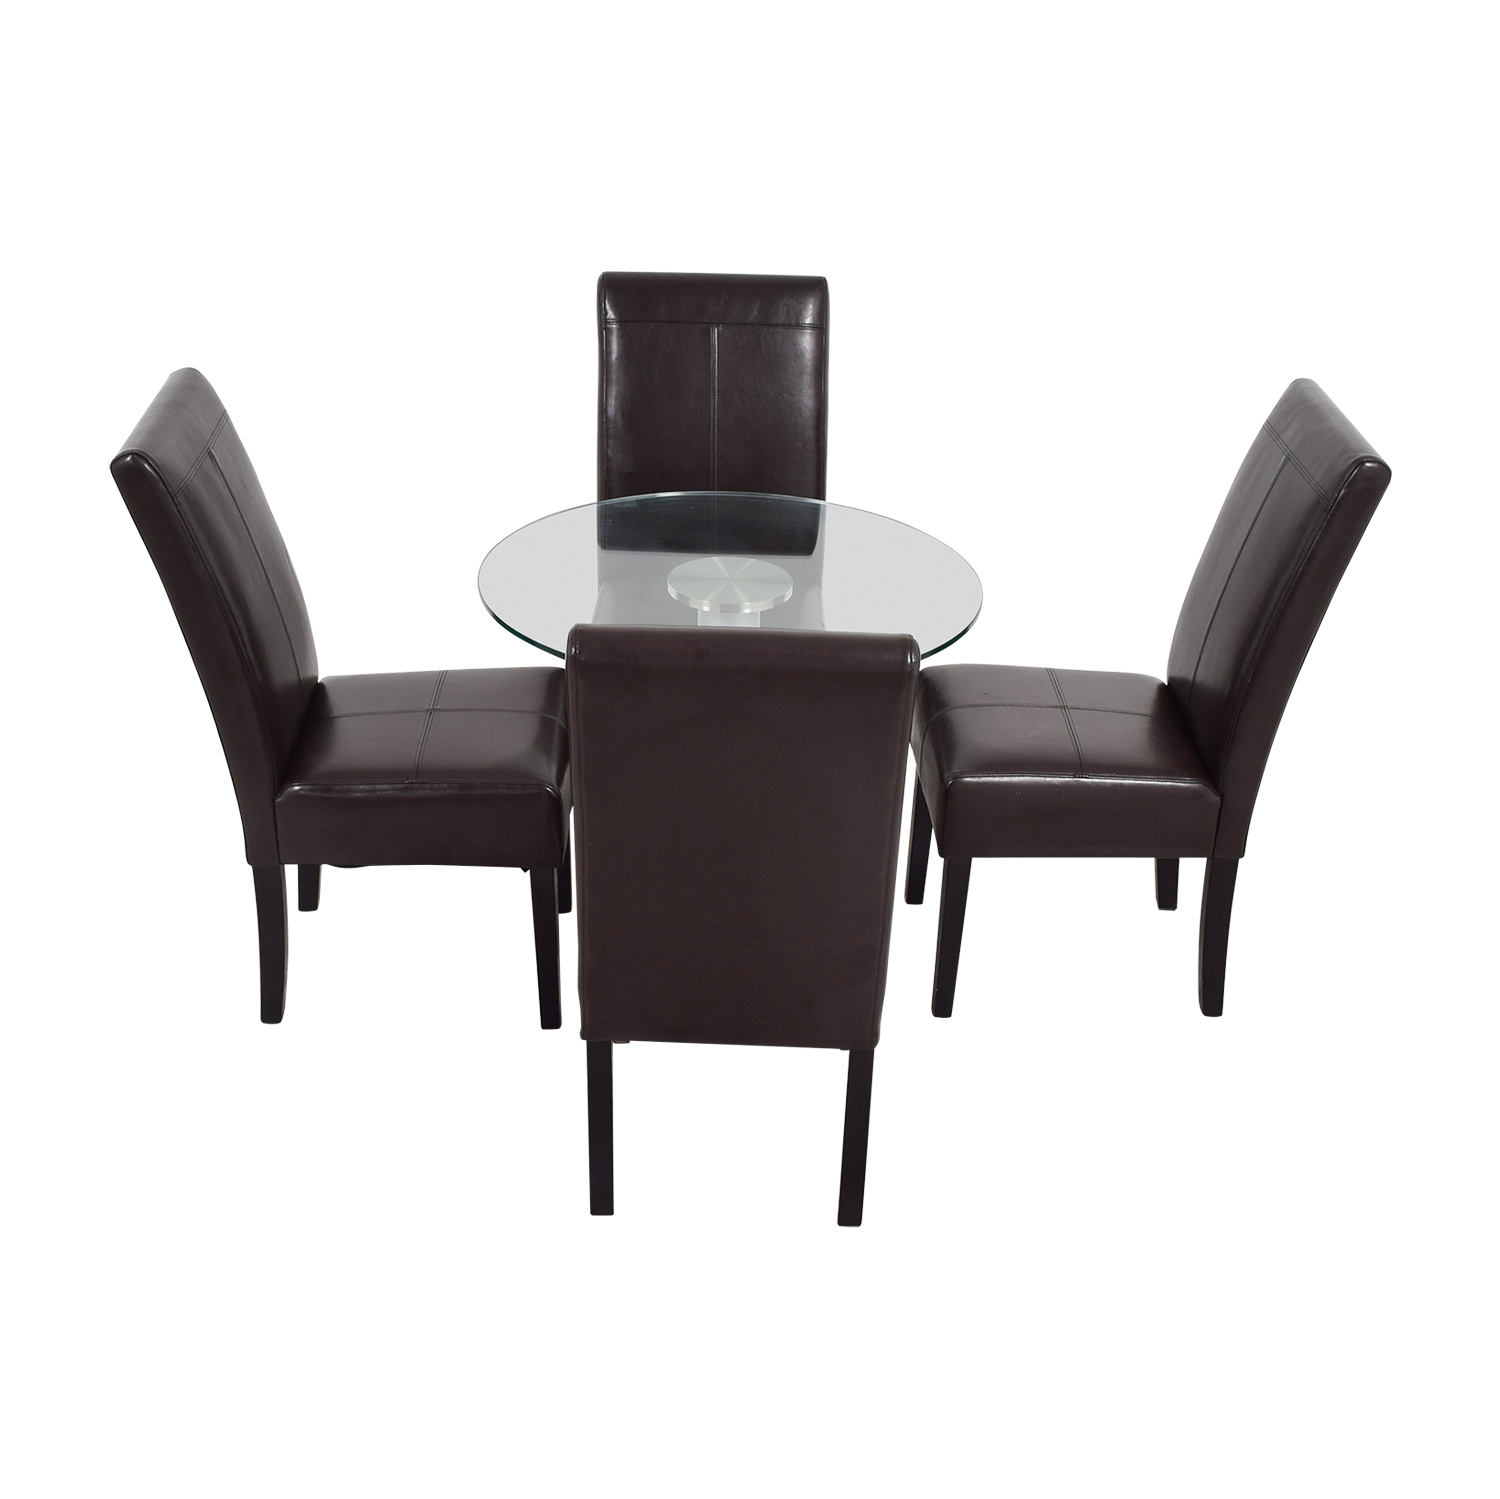 Round Glass and Metal Dining Set price